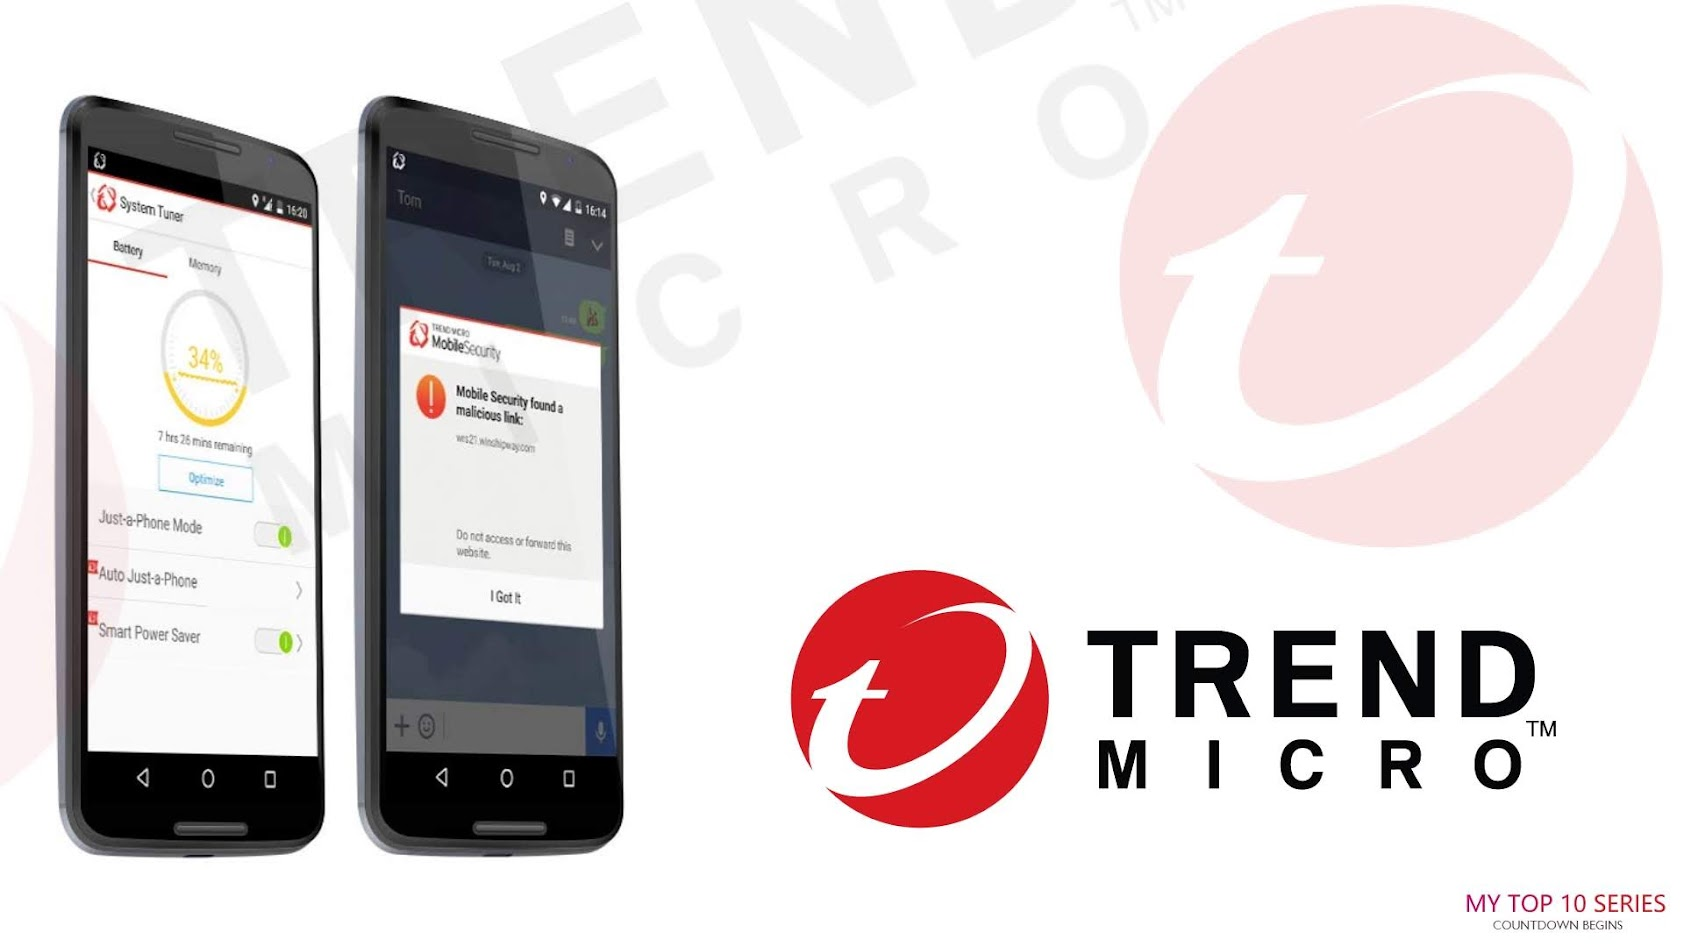 trend micro security mobile